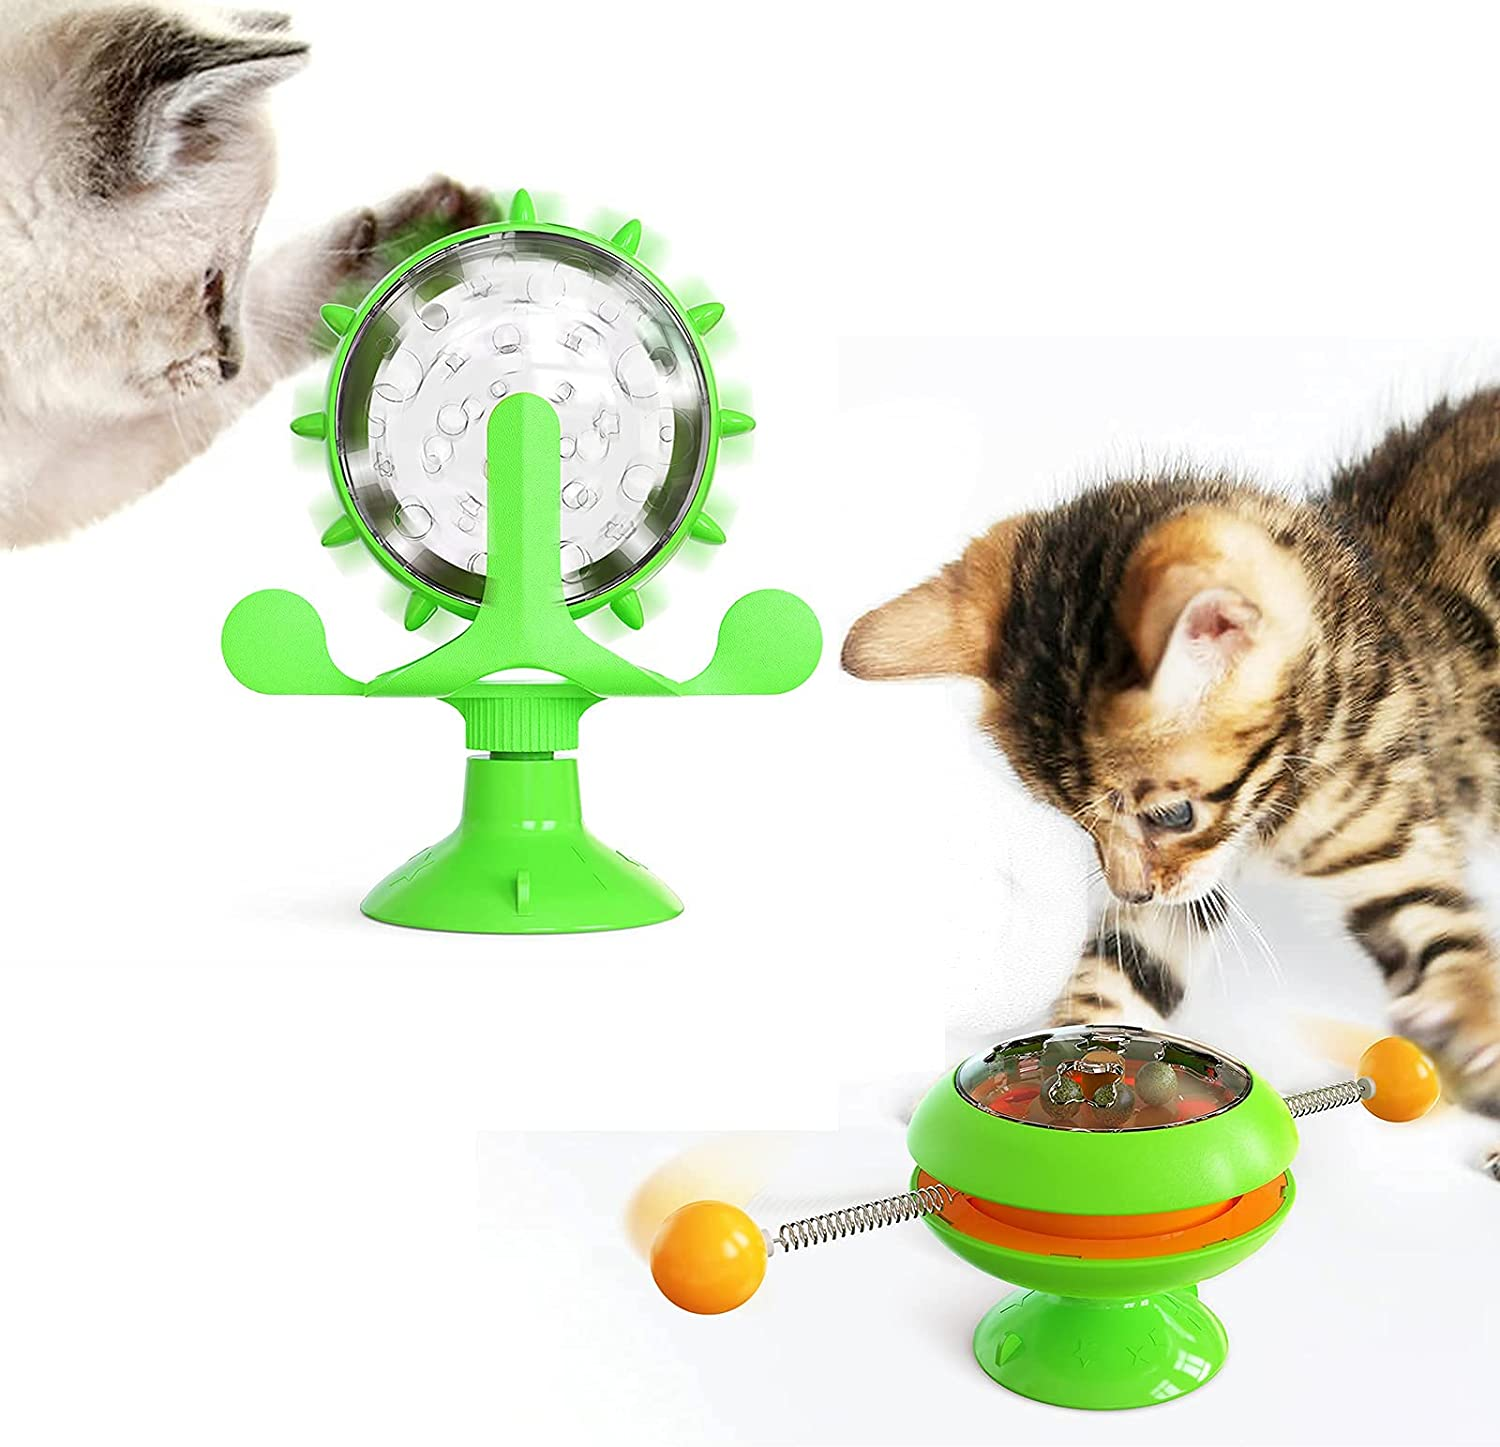 Cat Toys Max 48% OFF Interactive Ball Minneapolis Mall Toy GYRO Windmill C Shaped